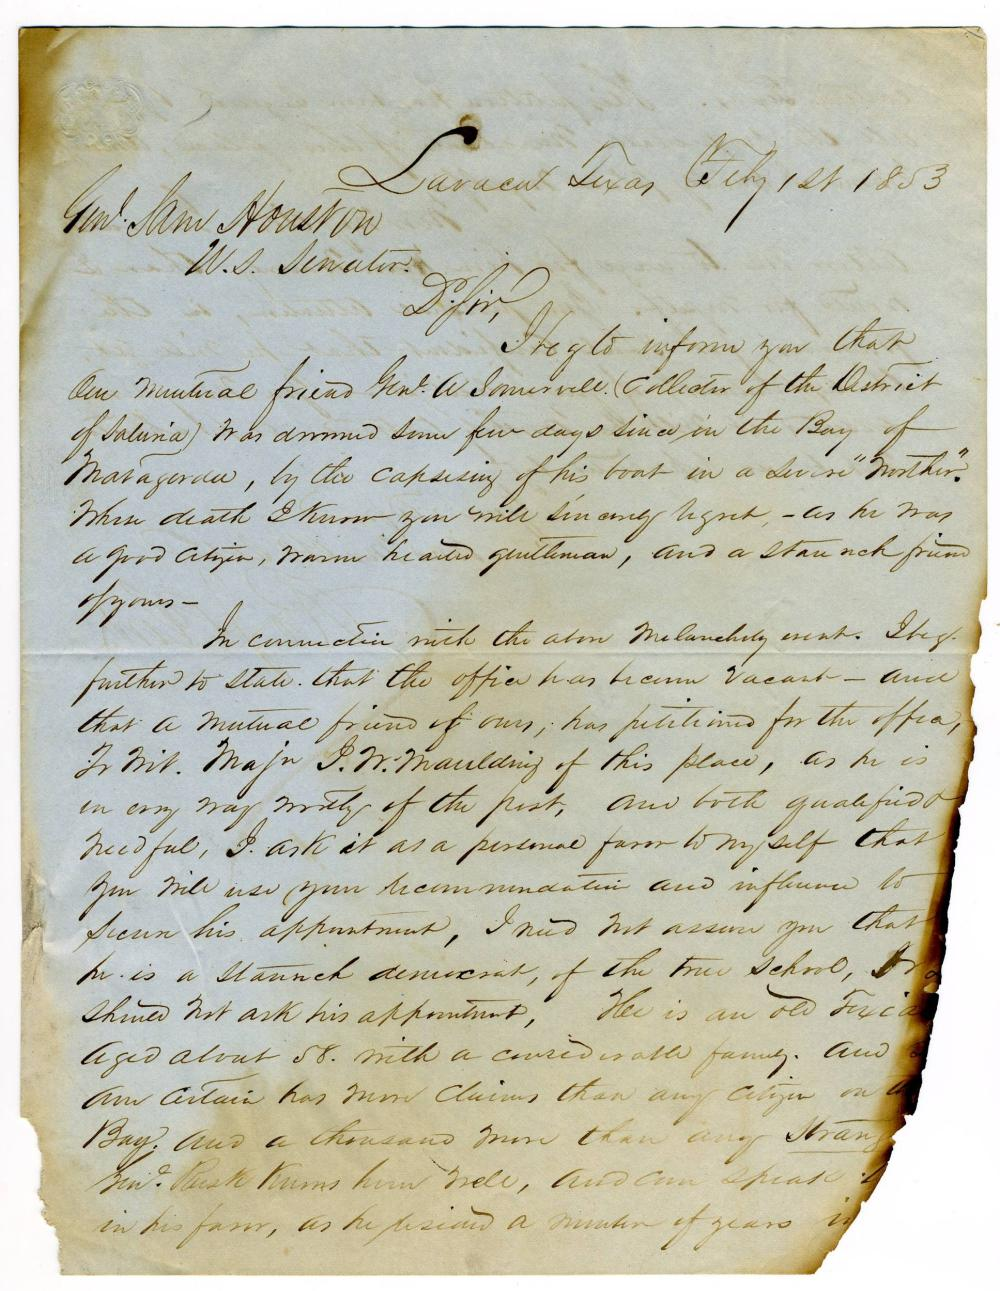 Robert J. Clow Appeals to Sam Houston of Texas in 1853